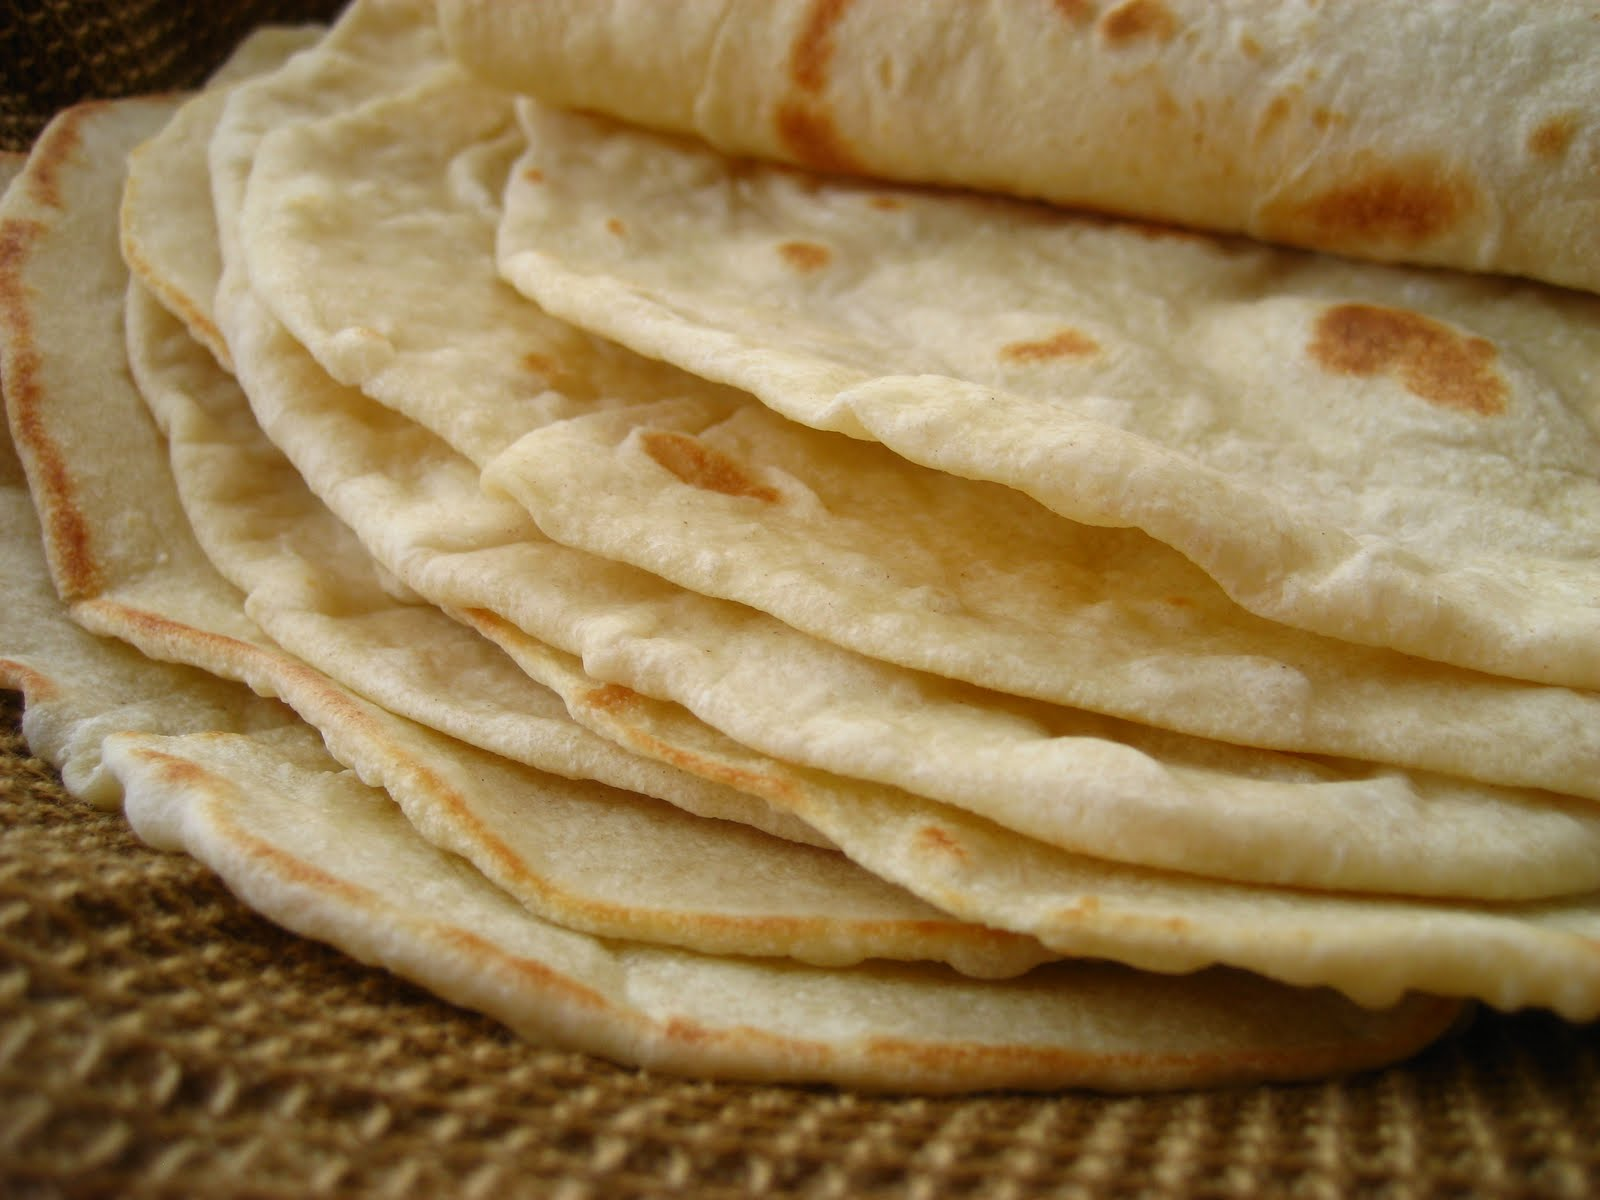 Flour Tortillas with leavening...the best I've had.